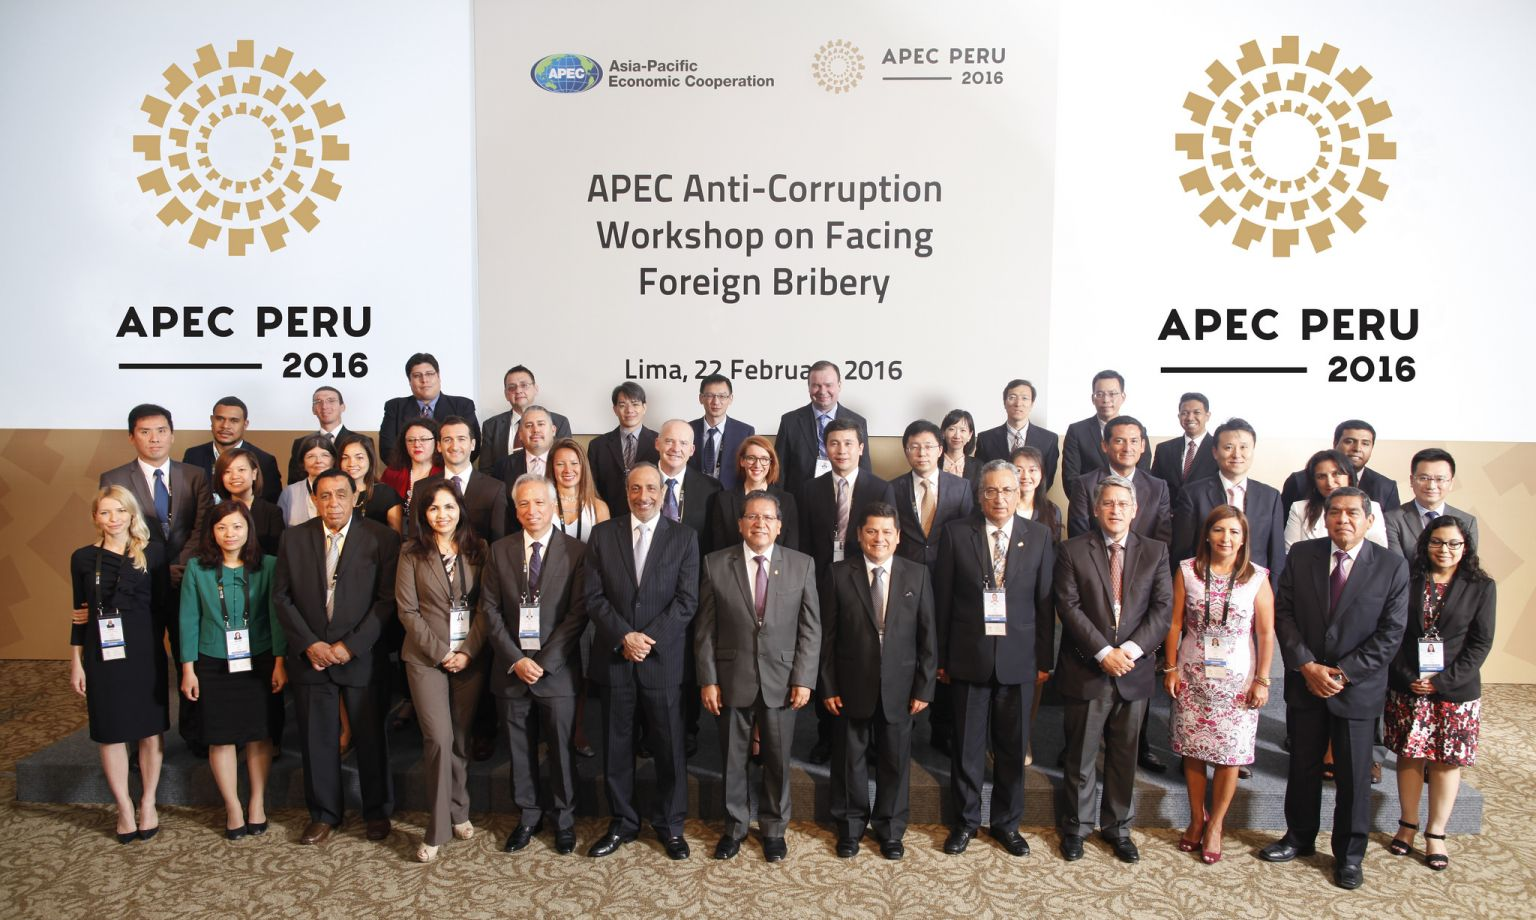 Reuniones-Anticorrupcion-APEC-2016-2.jpg